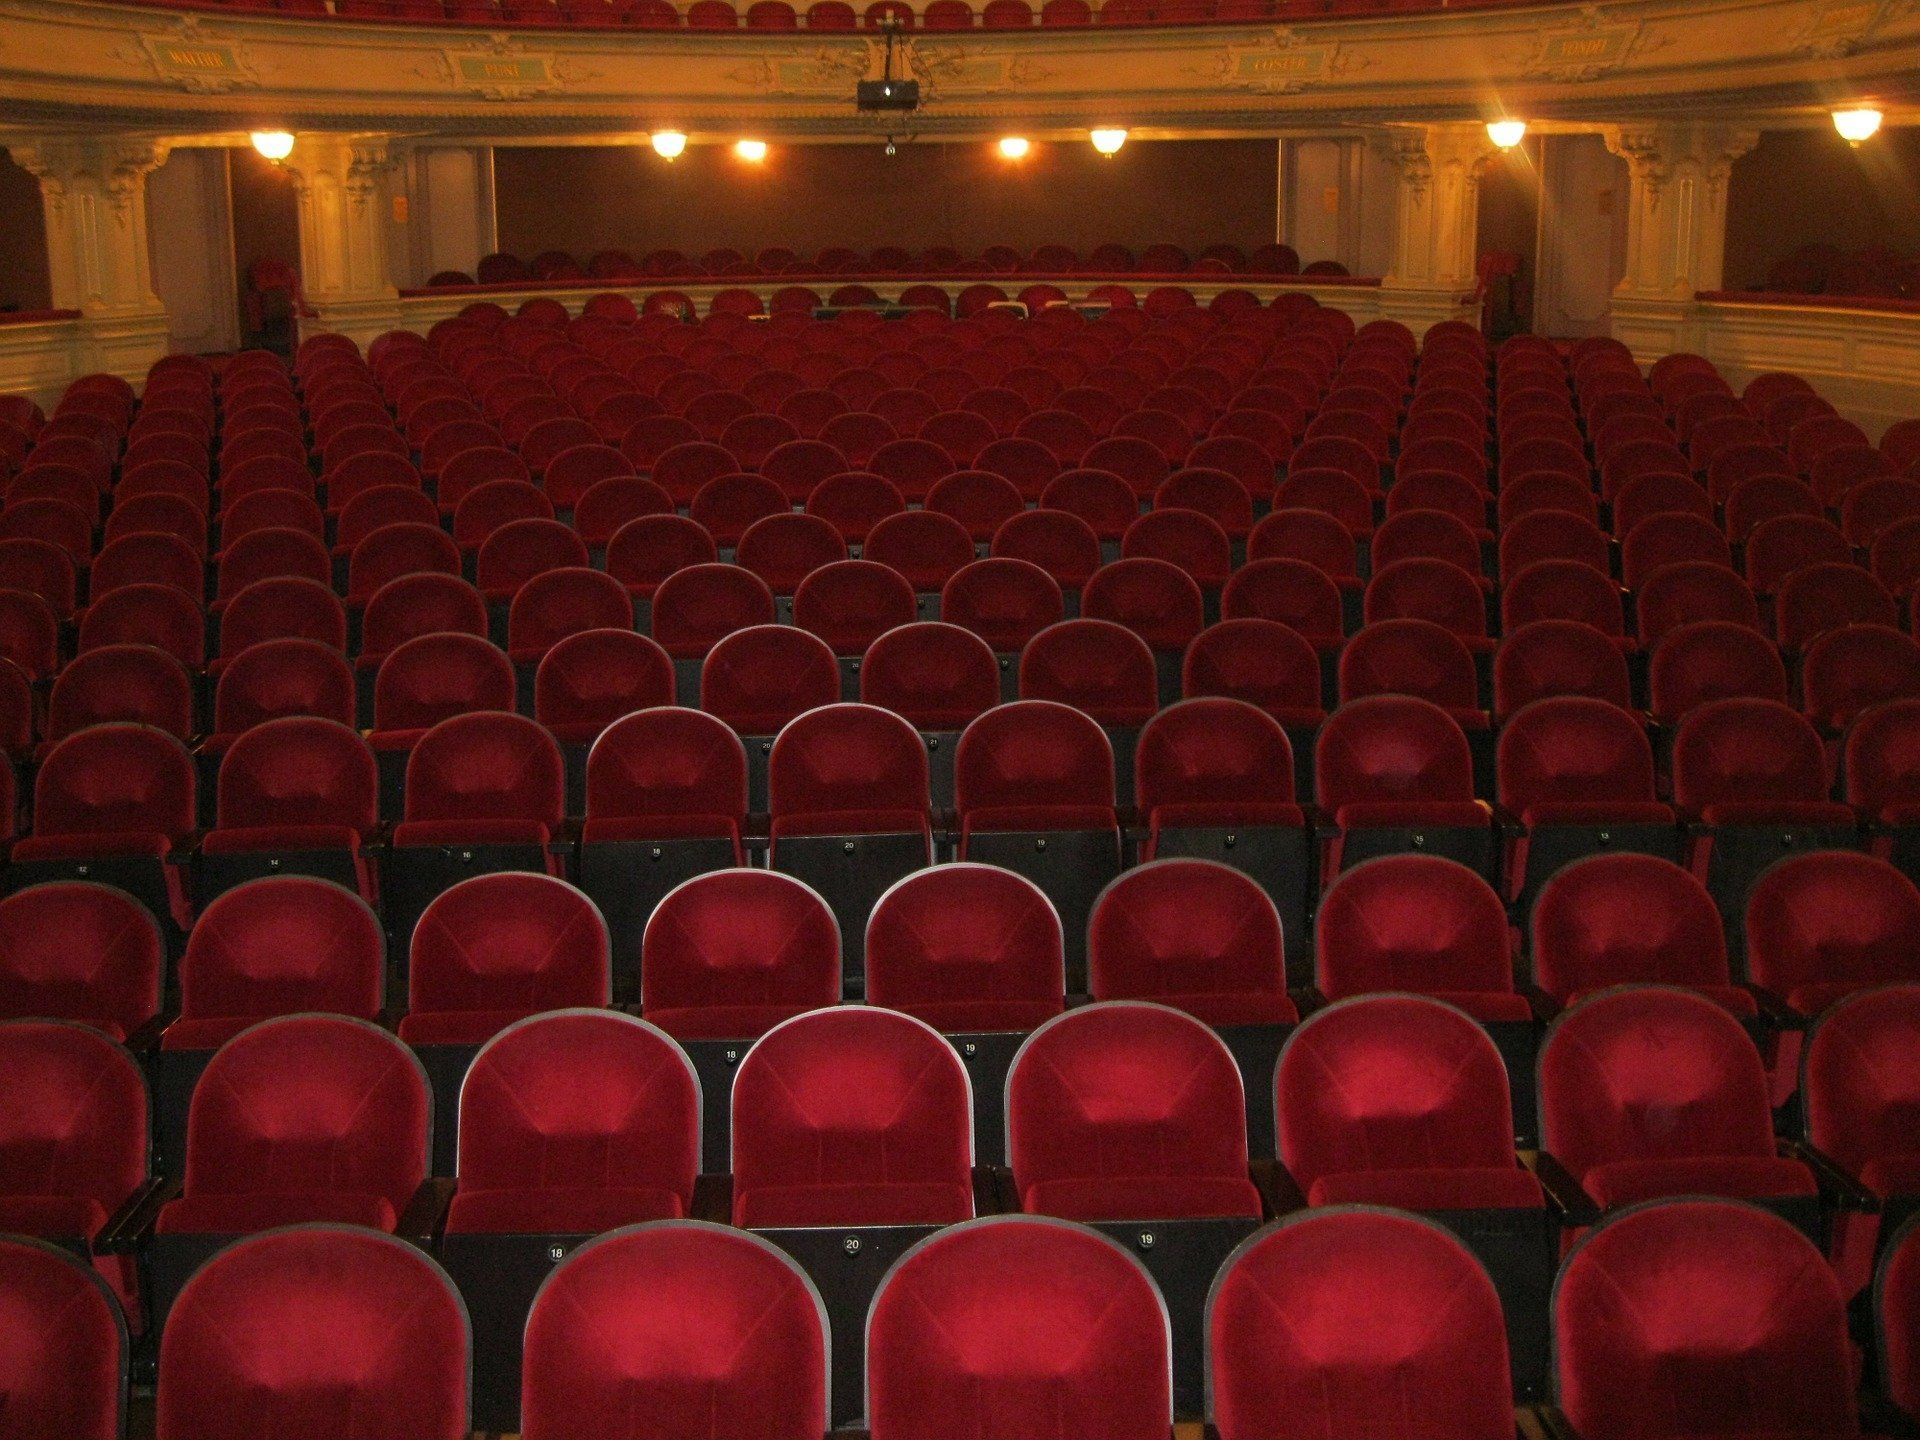 A theater of empty seats. | Photo: Pixabay